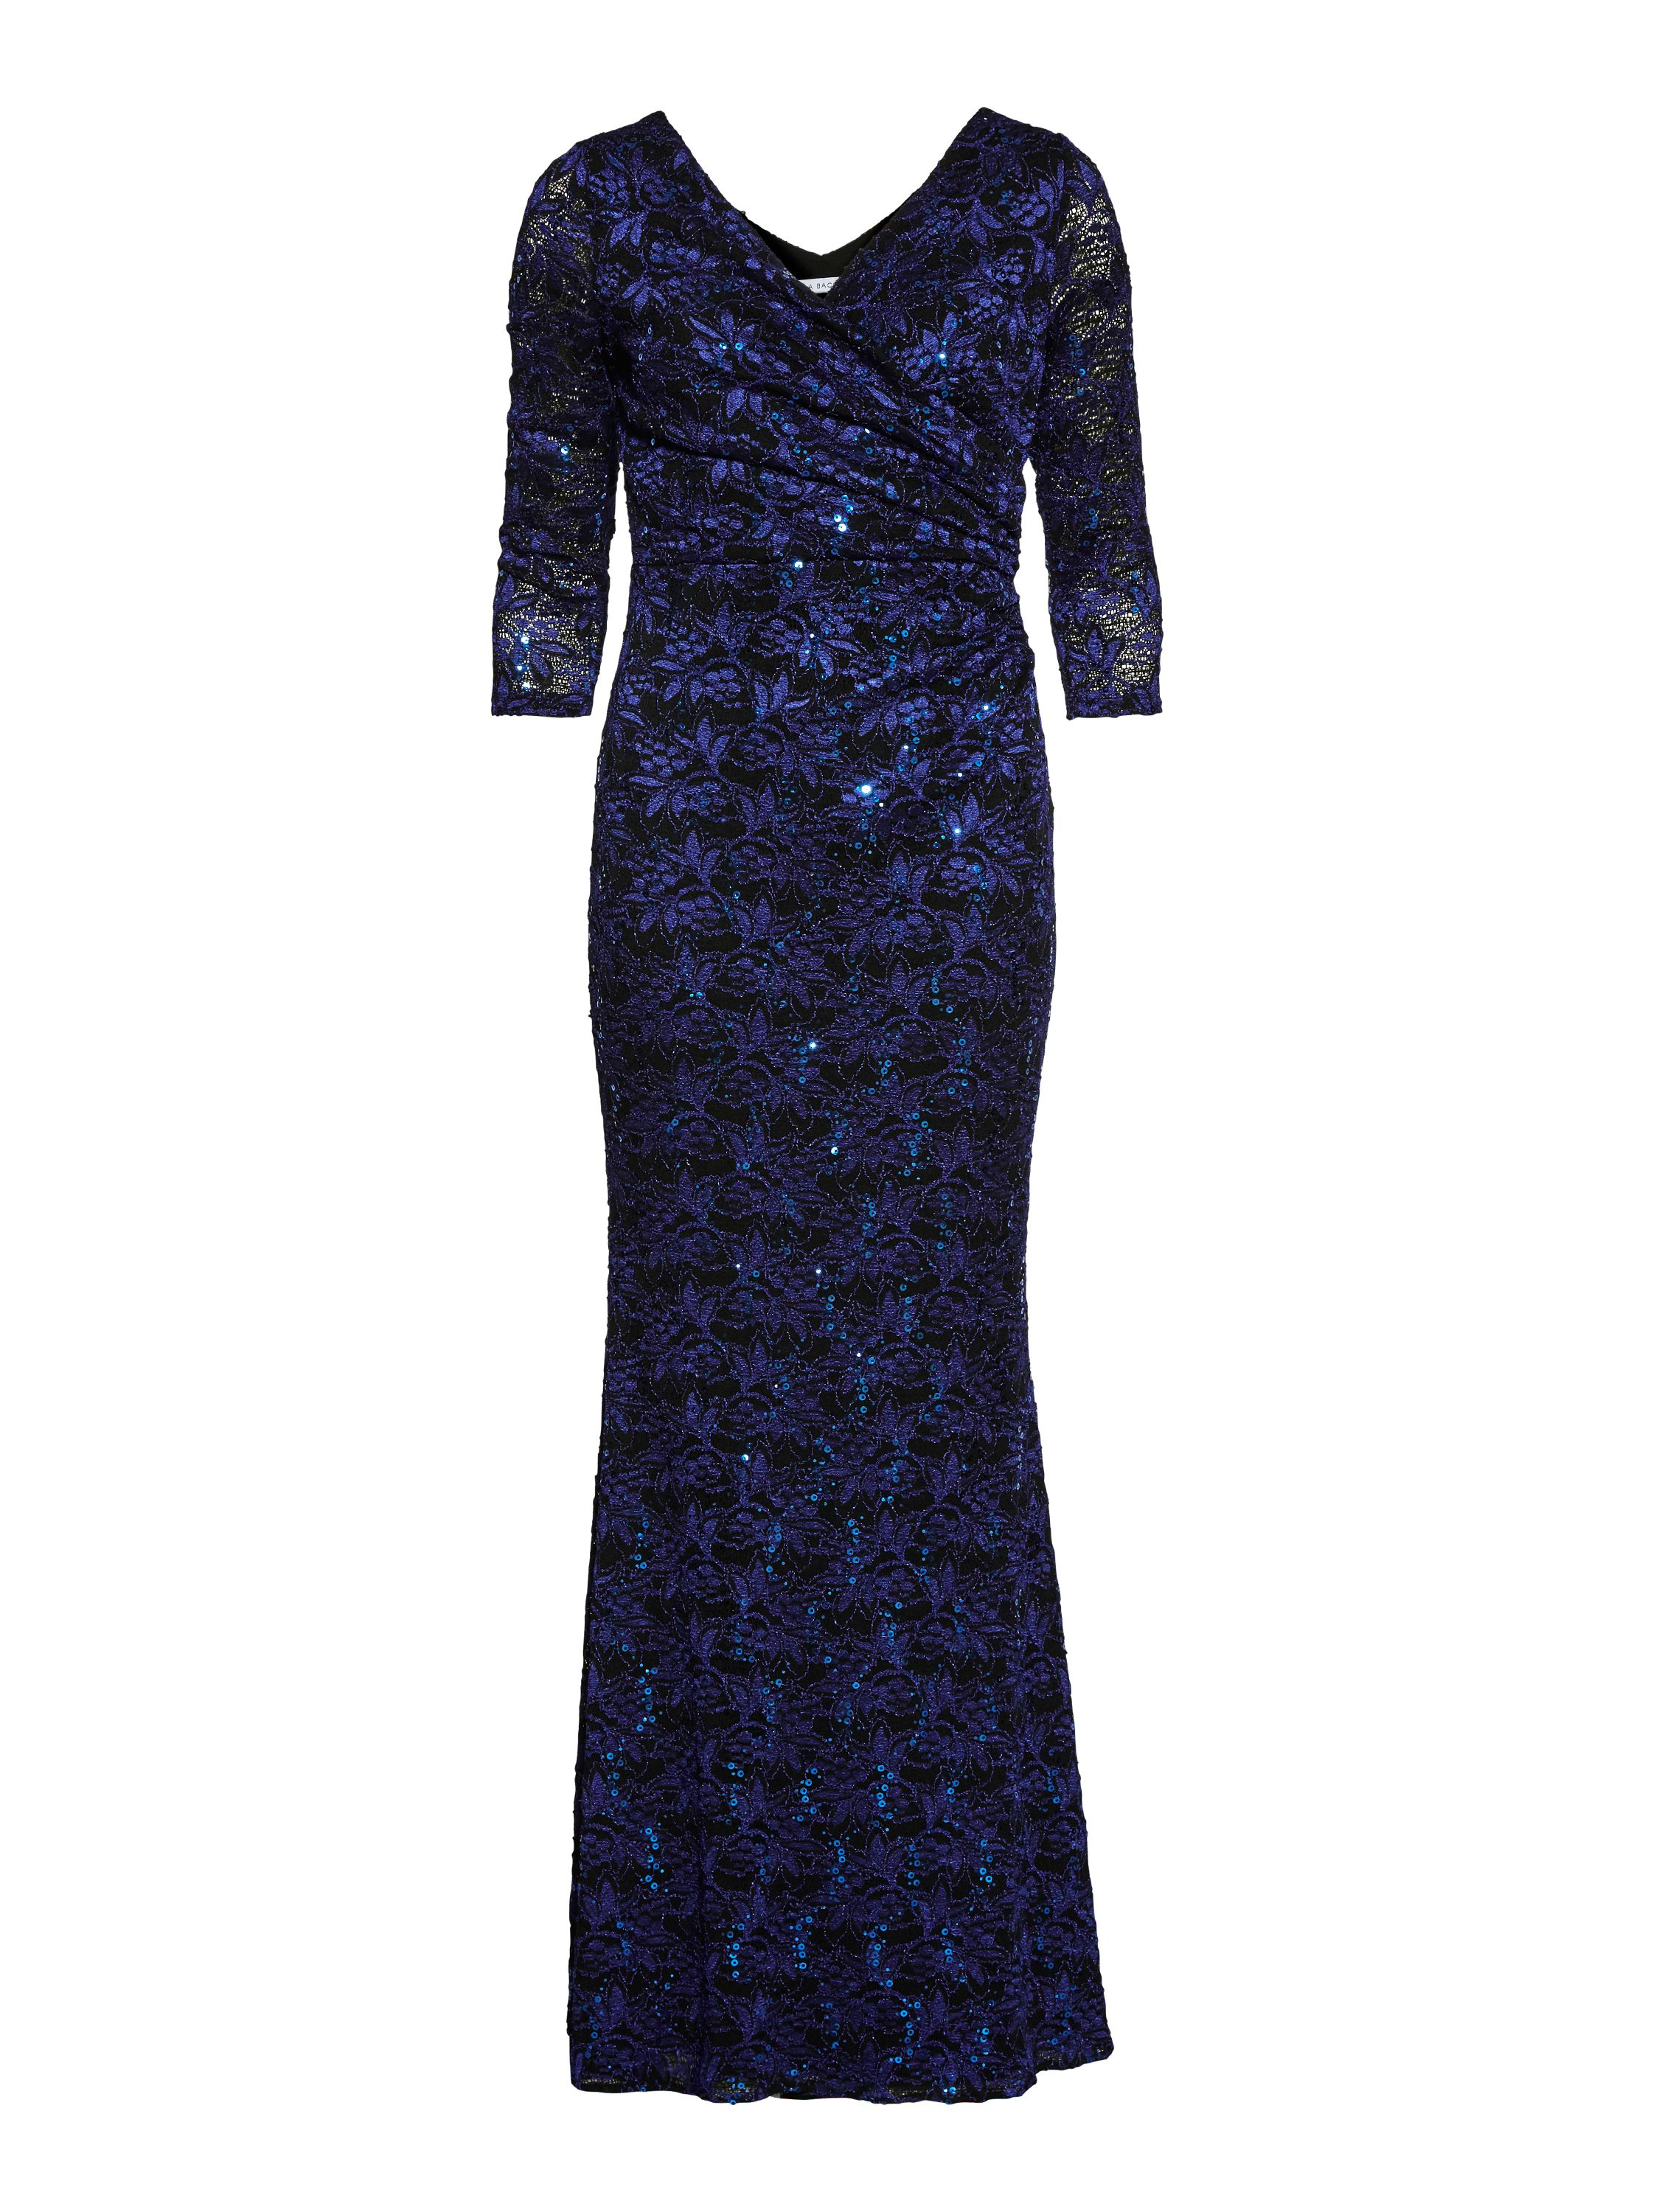 Gina Bacconi Royal Black Sequin Leaf Lace Maxi Dress, Blue